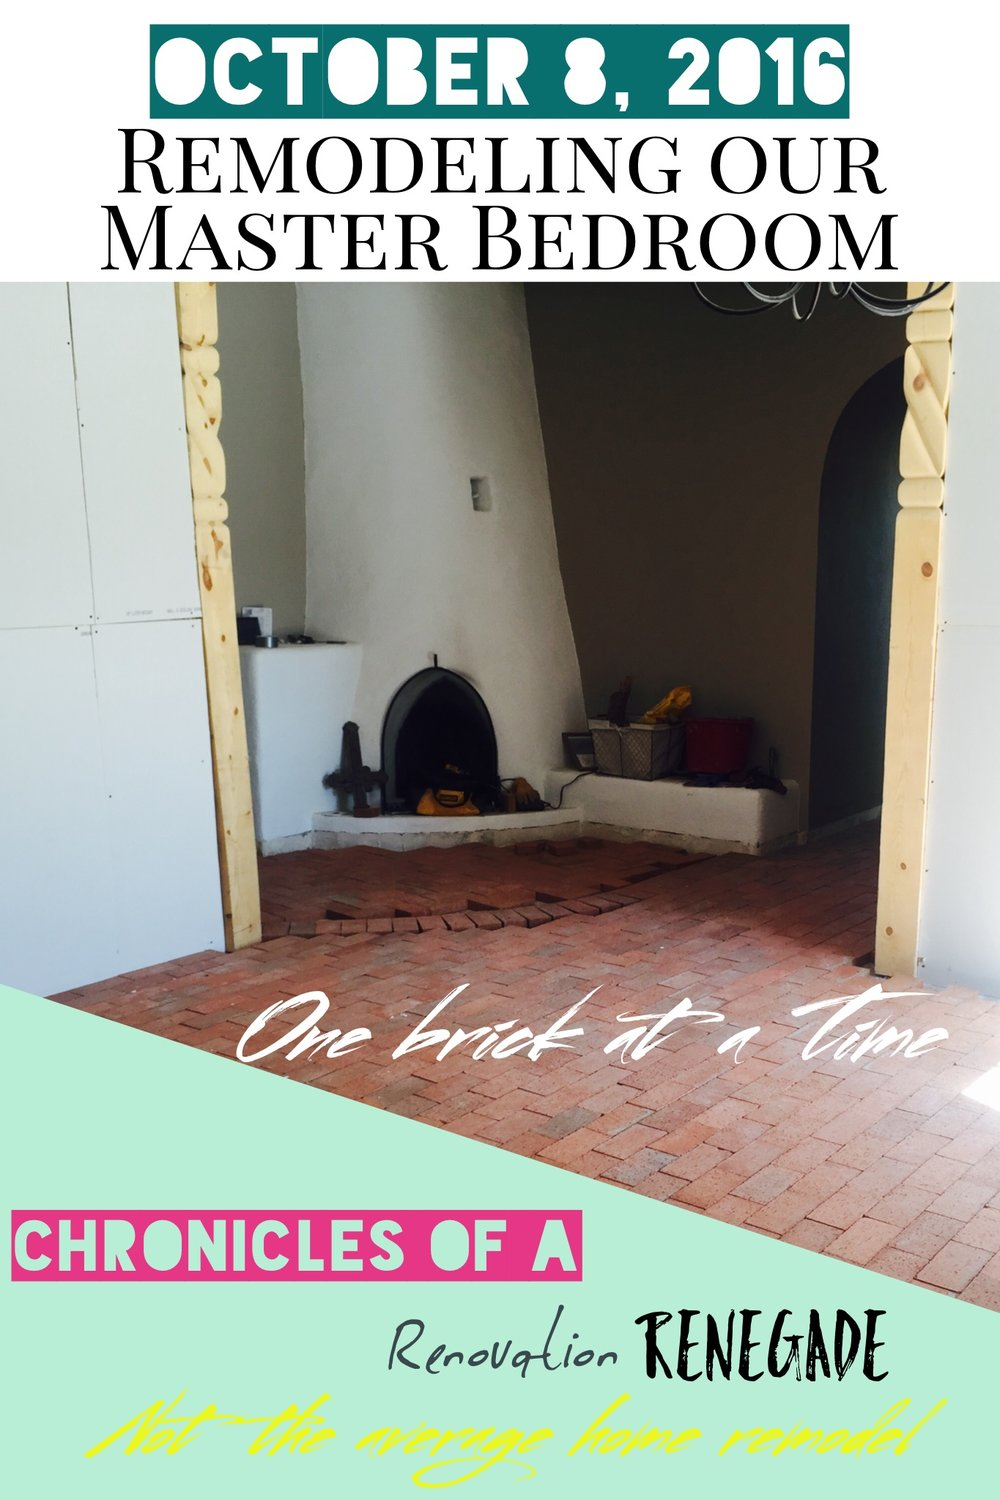 Remodeling our Master Bedroom- One brick at a timehttp://www.renovationrenegade.com/